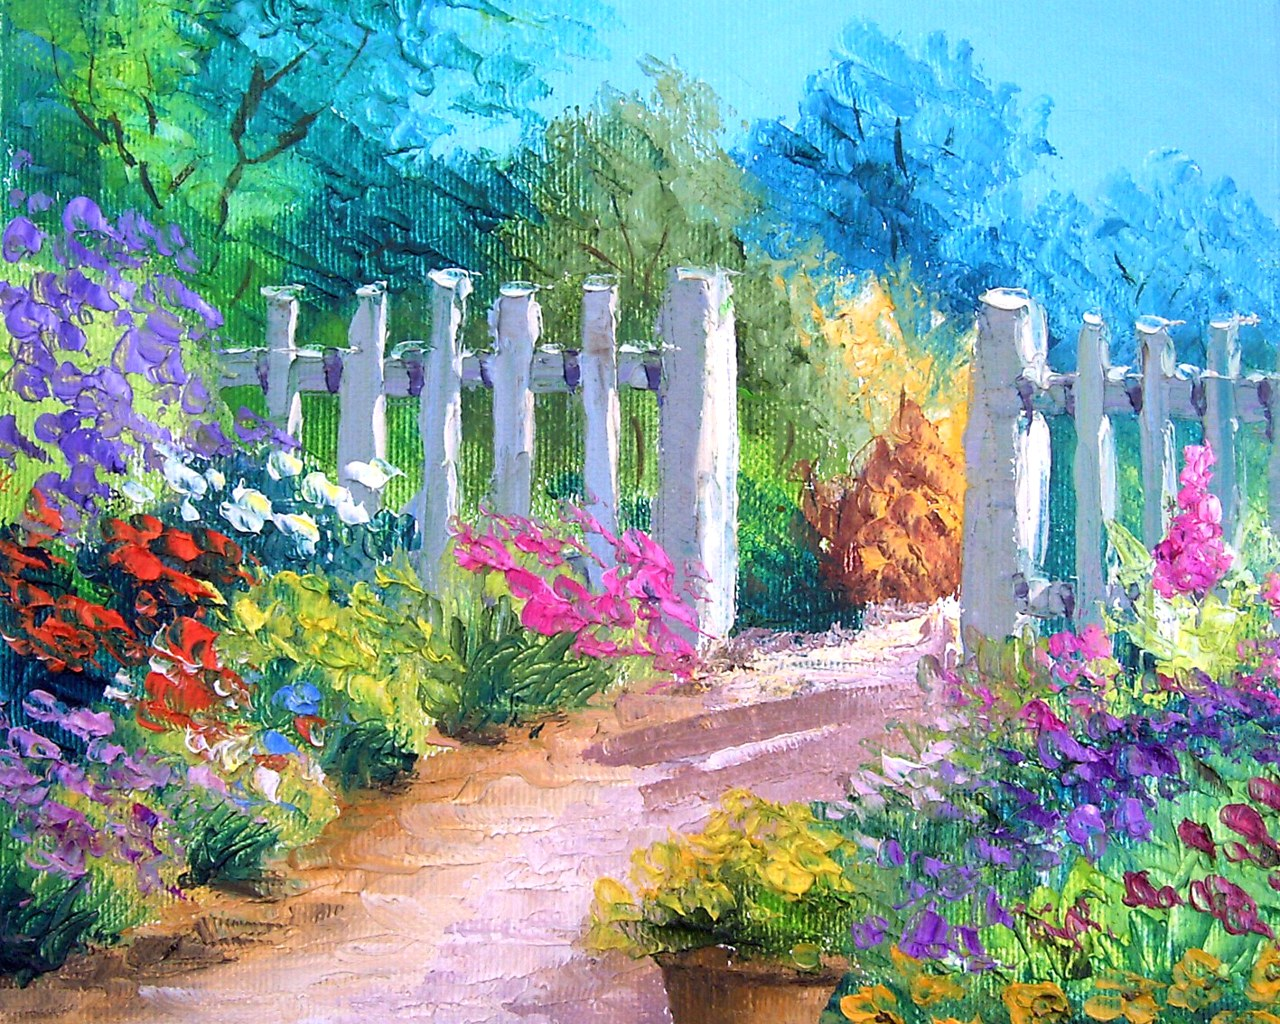 http://www.wallcoo.net/paint/Jean-Marc_Janiaczyk_Painting_1600x1200/wallpapers/1280x1024/Jean-Marc_Janiaczyk_Art_Painting_jardin.jpg